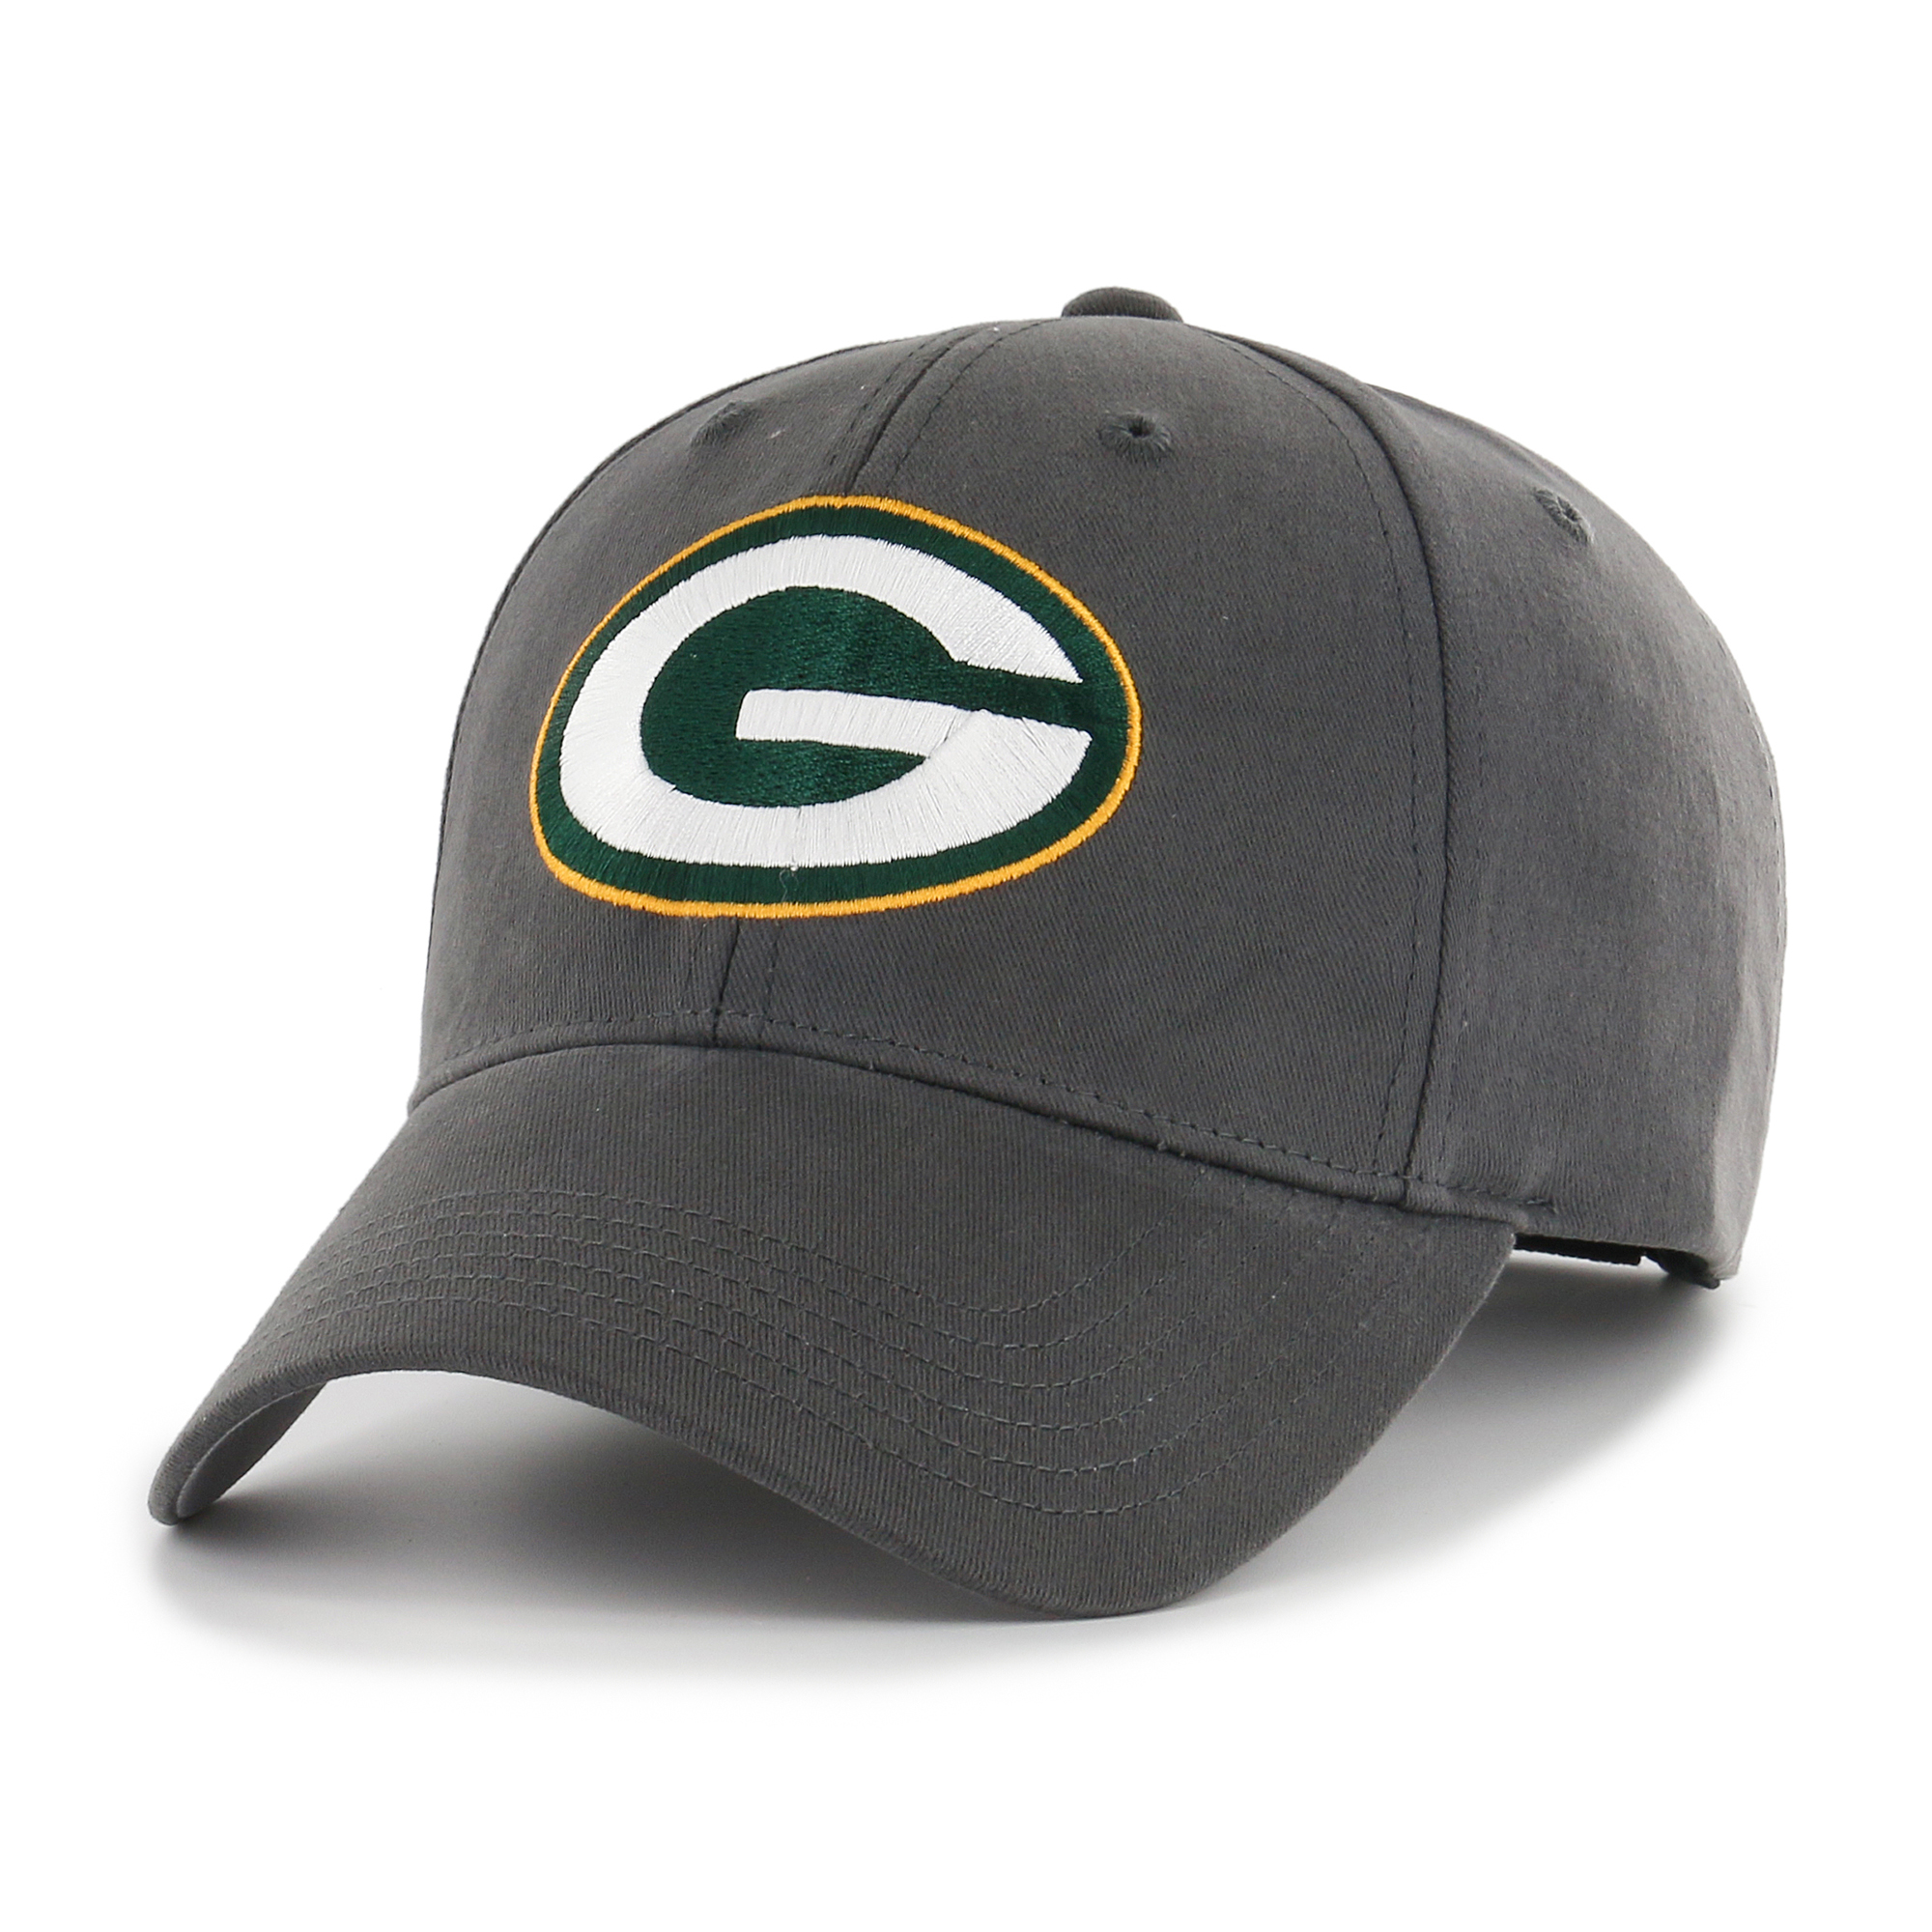 NFL Green Bay Packers Basic Adjustable Cap/Hat by Fan Favorite